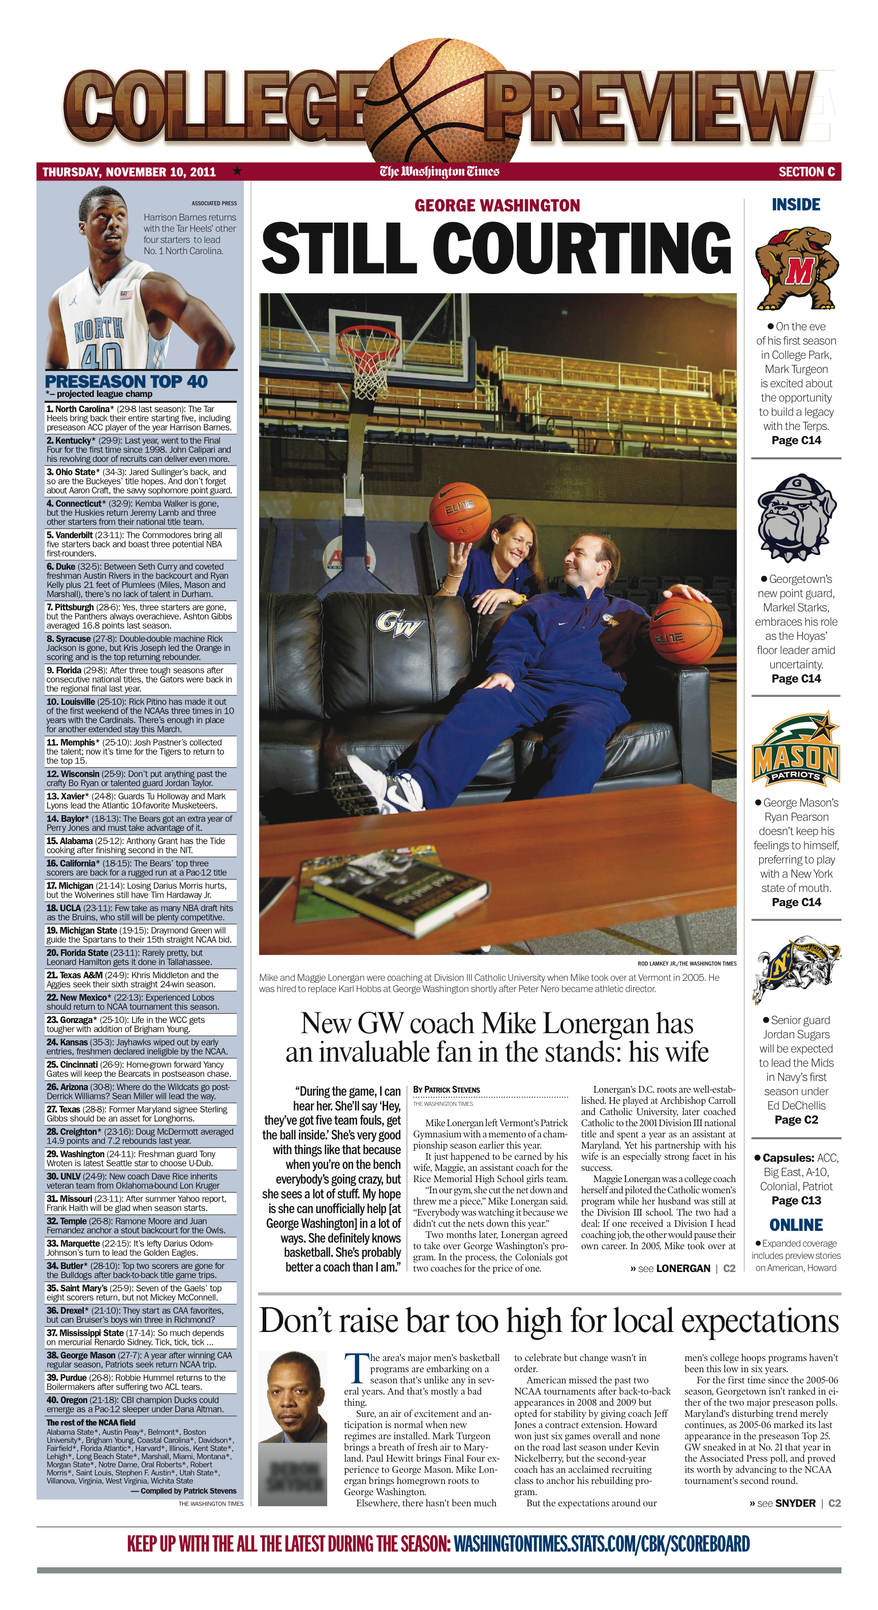 College hoops section